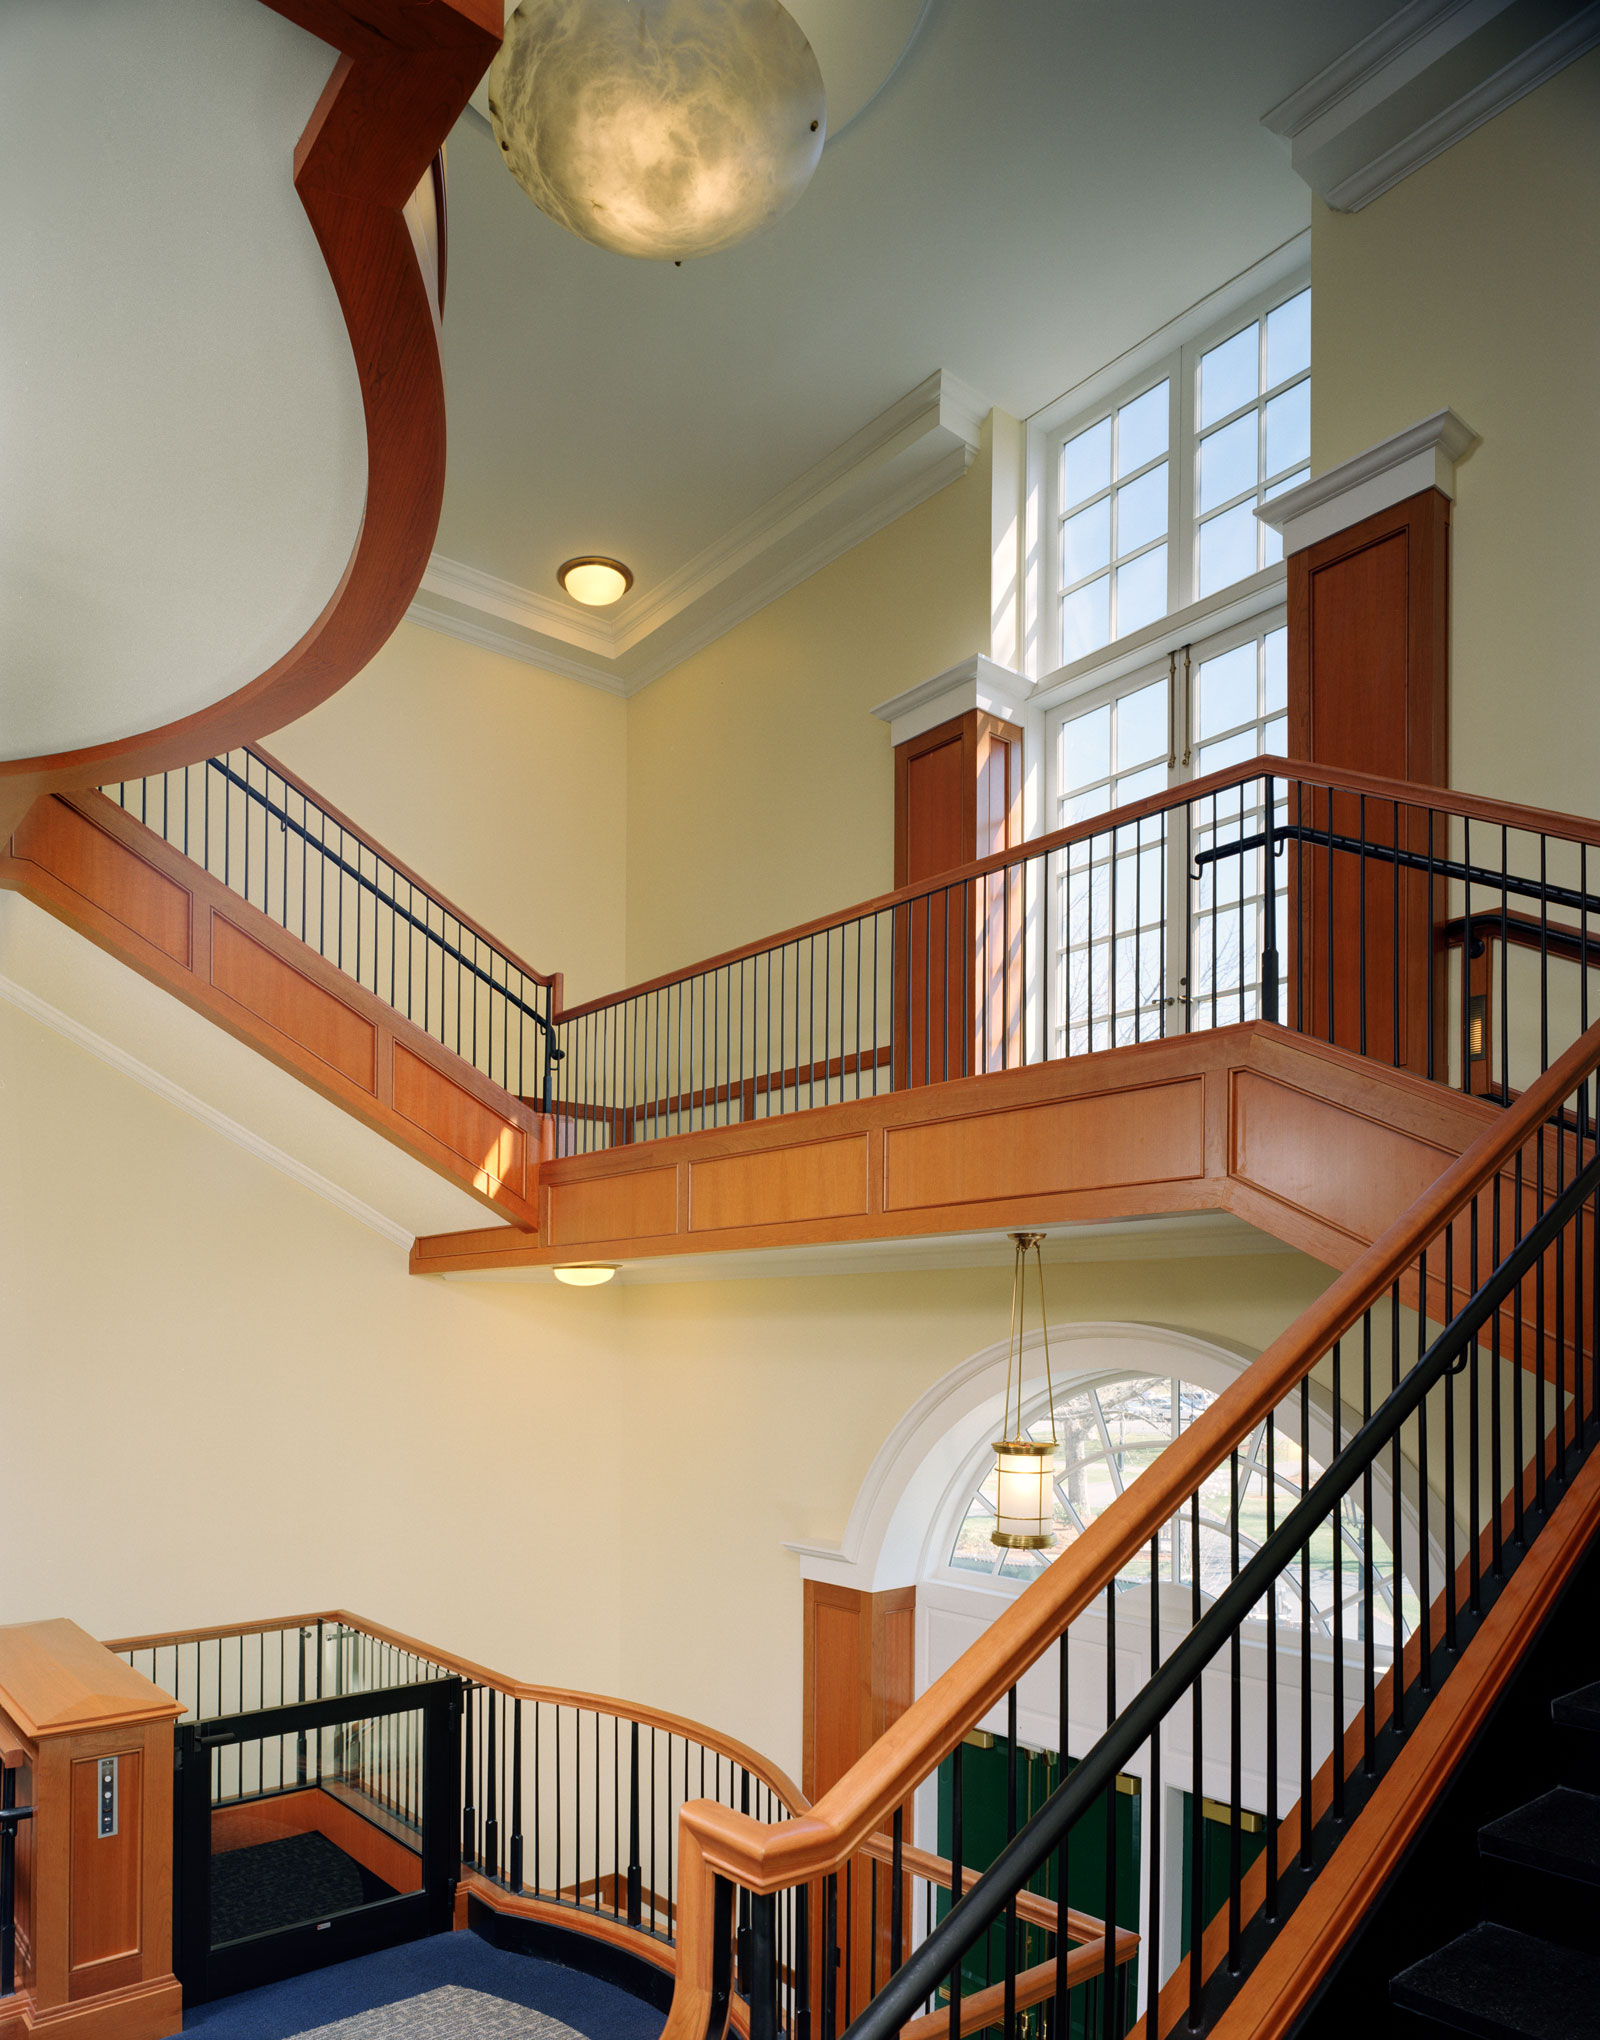 This grand stair, trim, rail and wall paneling was impeccably renovated by MRW.